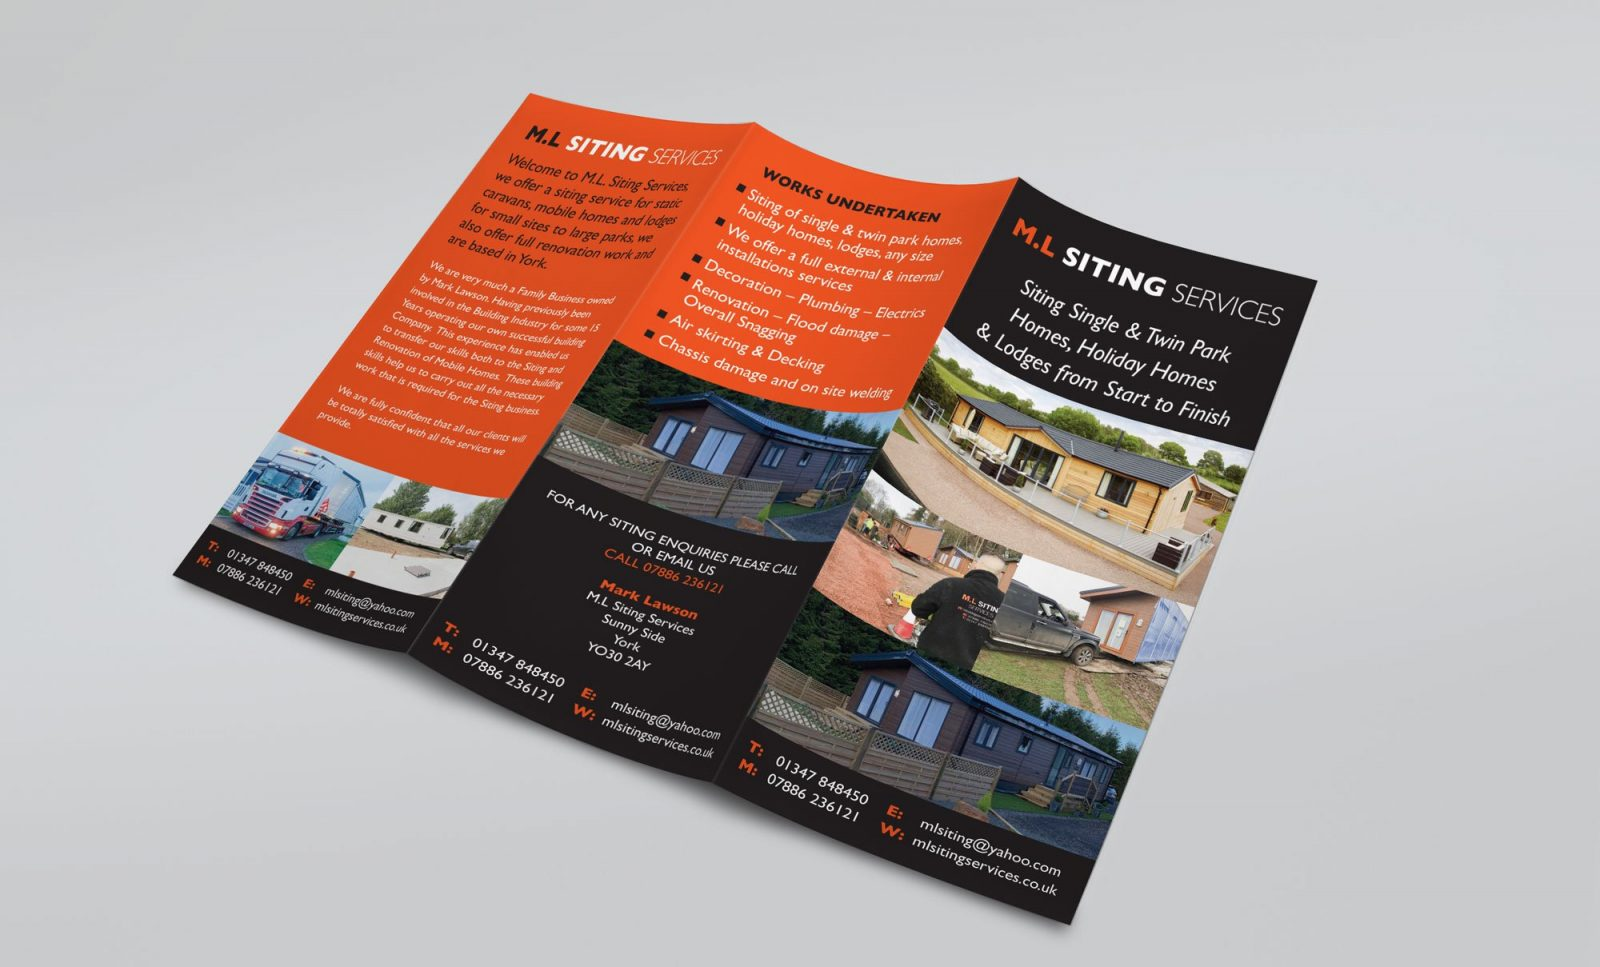 An A4 folded leaflet design for M.L Siting Services, showing the outer pages